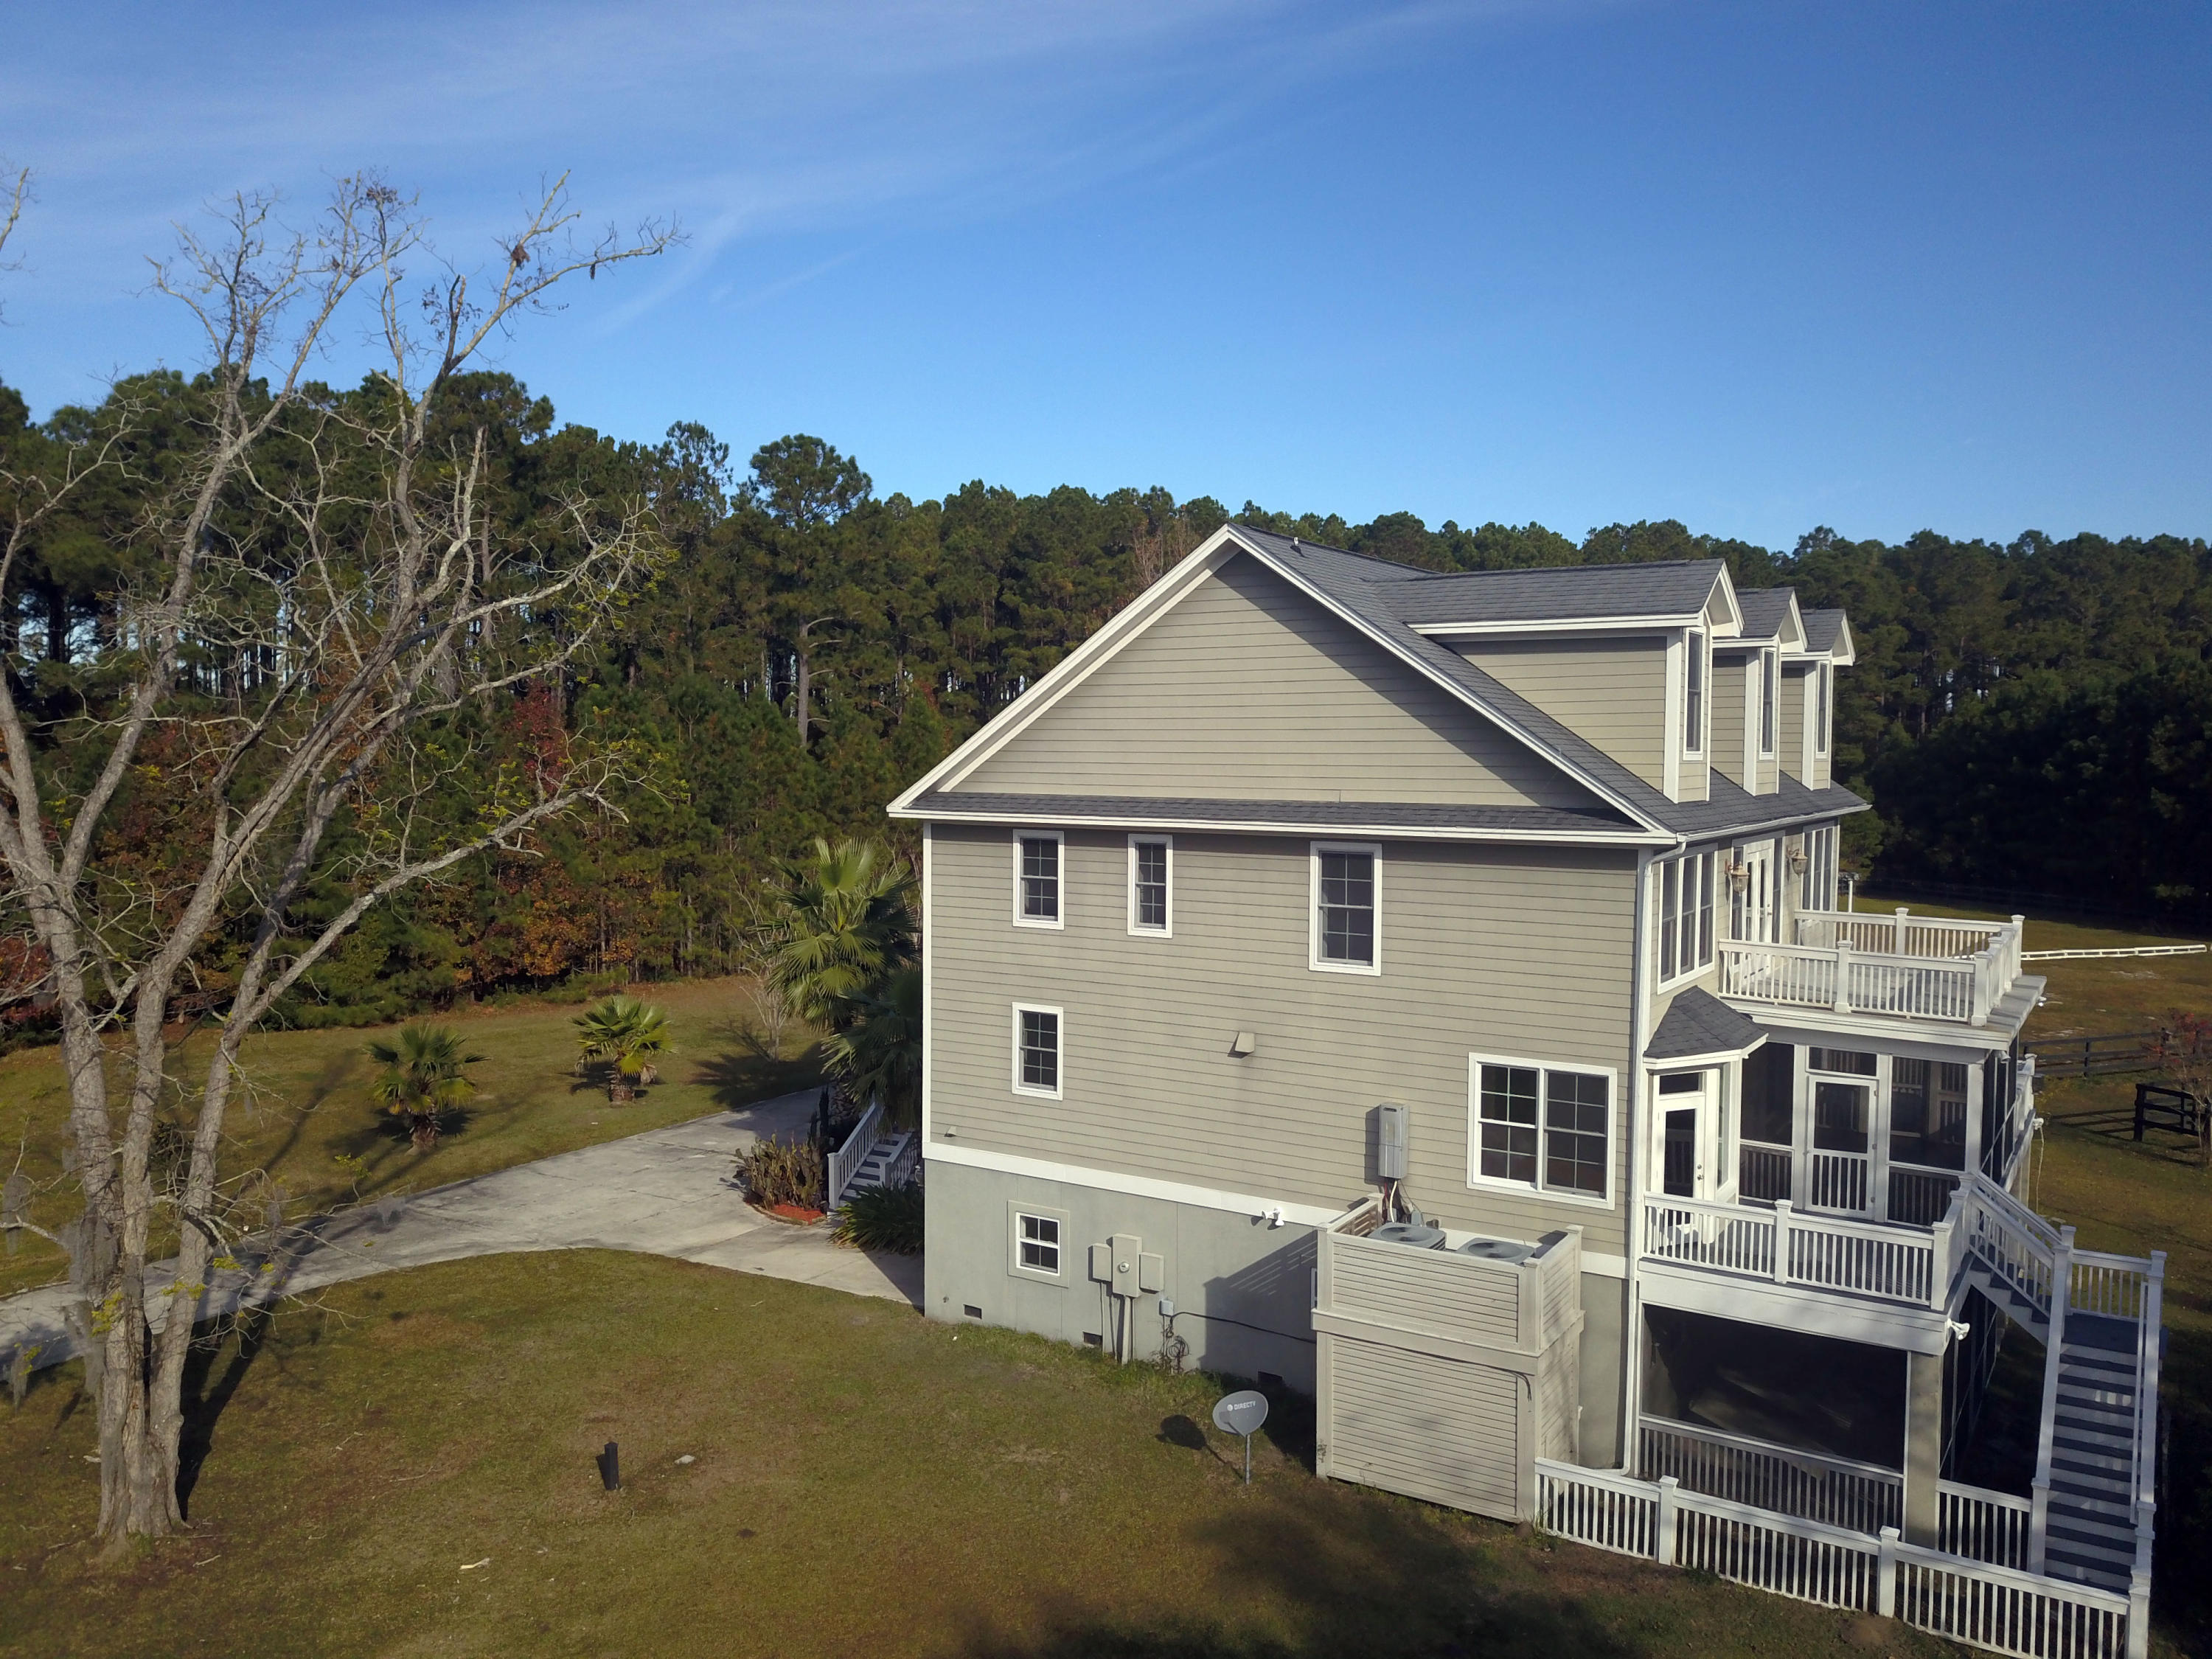 Polly Point Plantation Homes For Sale - 1389 Polly Point, Wadmalaw Island, SC - 39